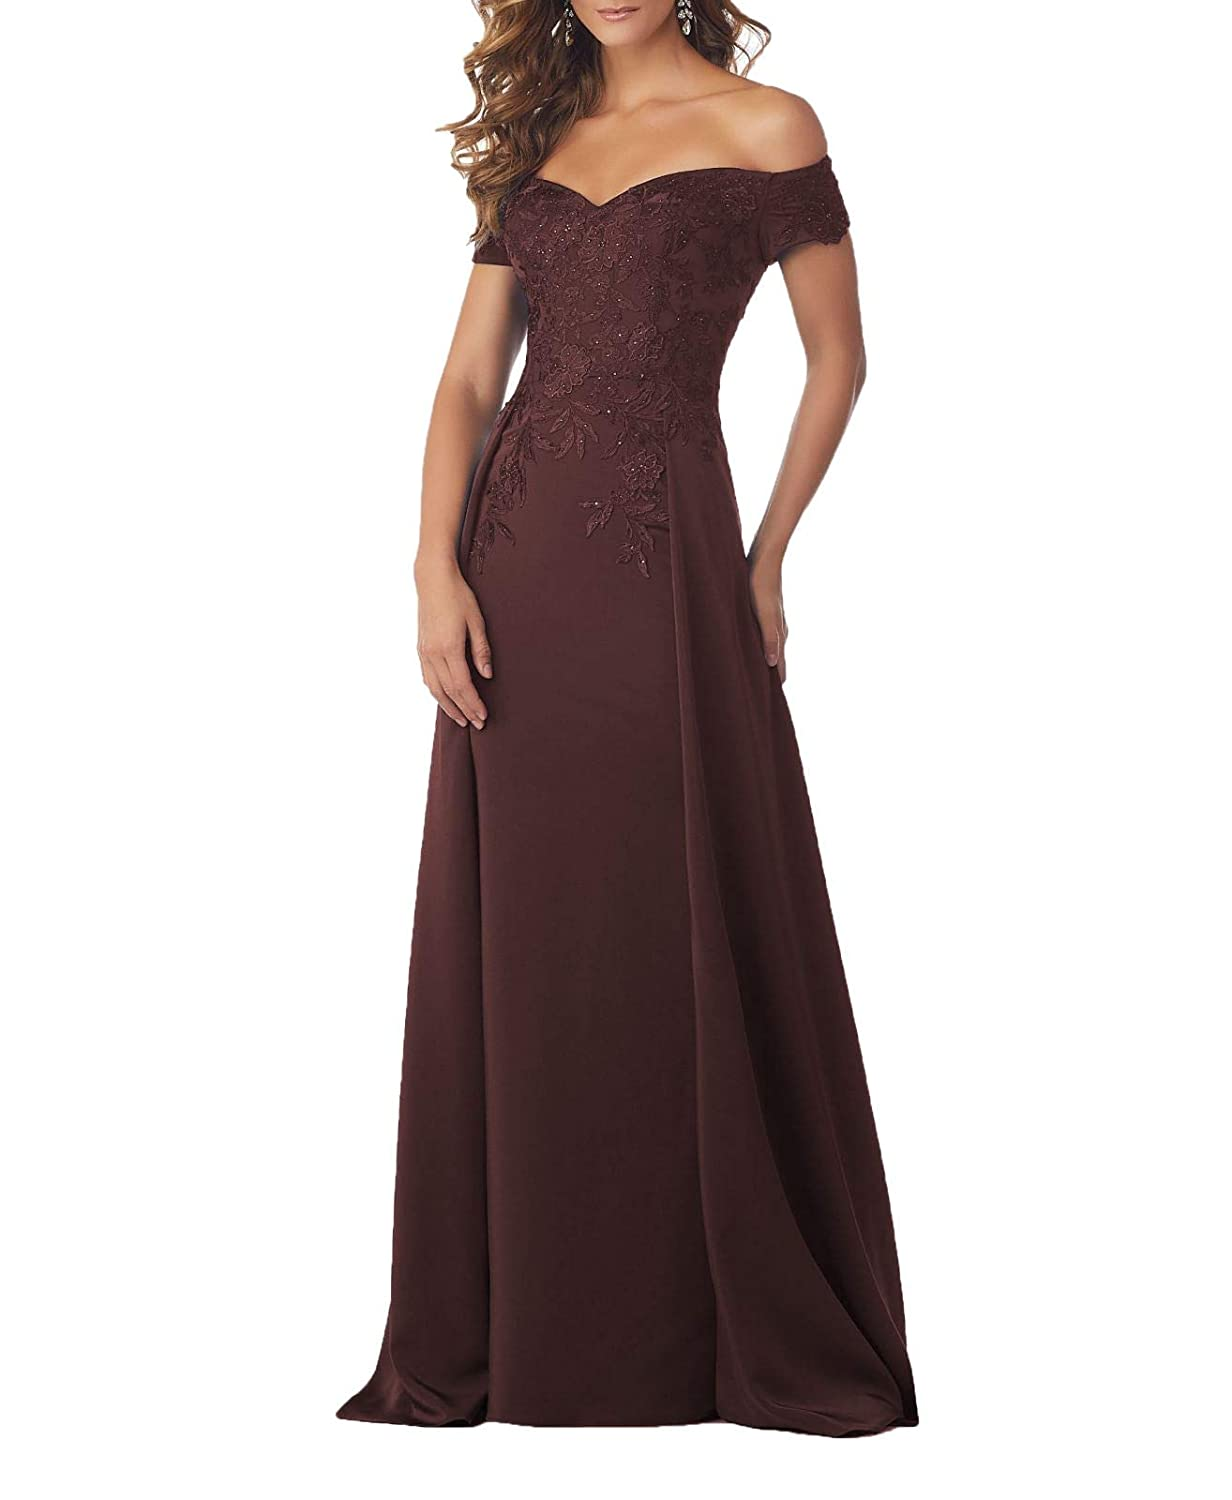 Brown Wanshaqin Women's Off The Shoulder Sweetheart Evening Gown Formal Wedding Party Dress for Brides with Cloak Back Tail